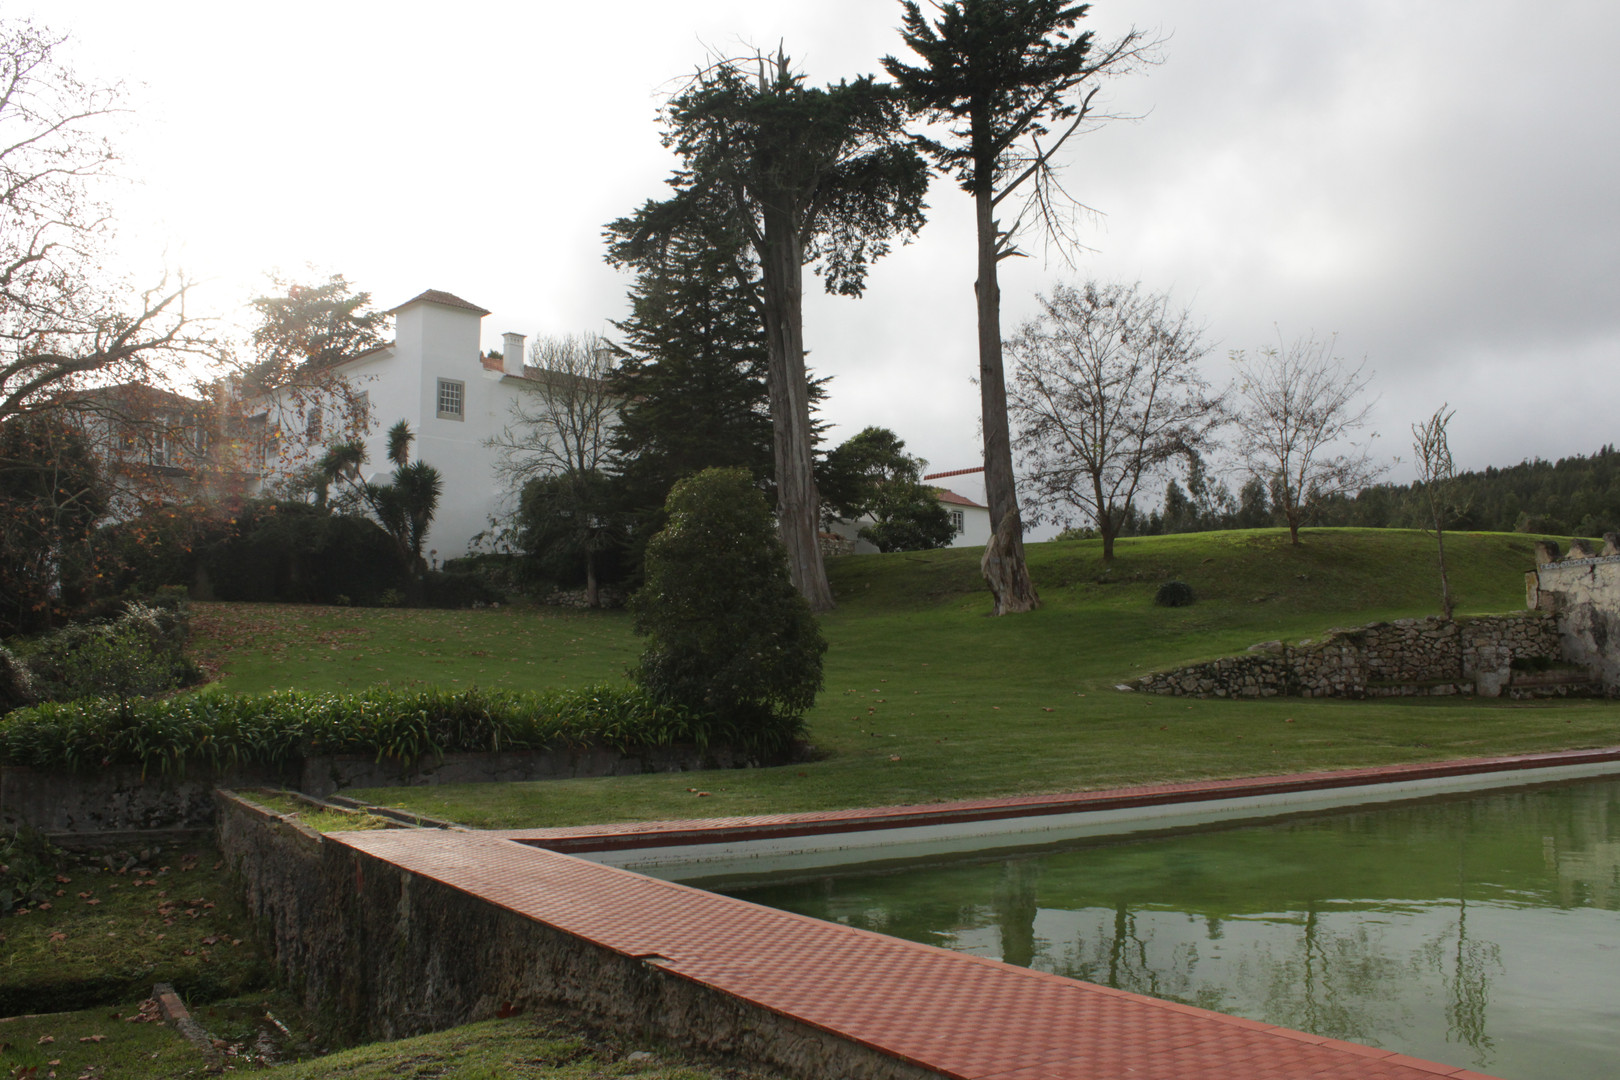 Quinta do Furadouro's garden (exhibiting space)